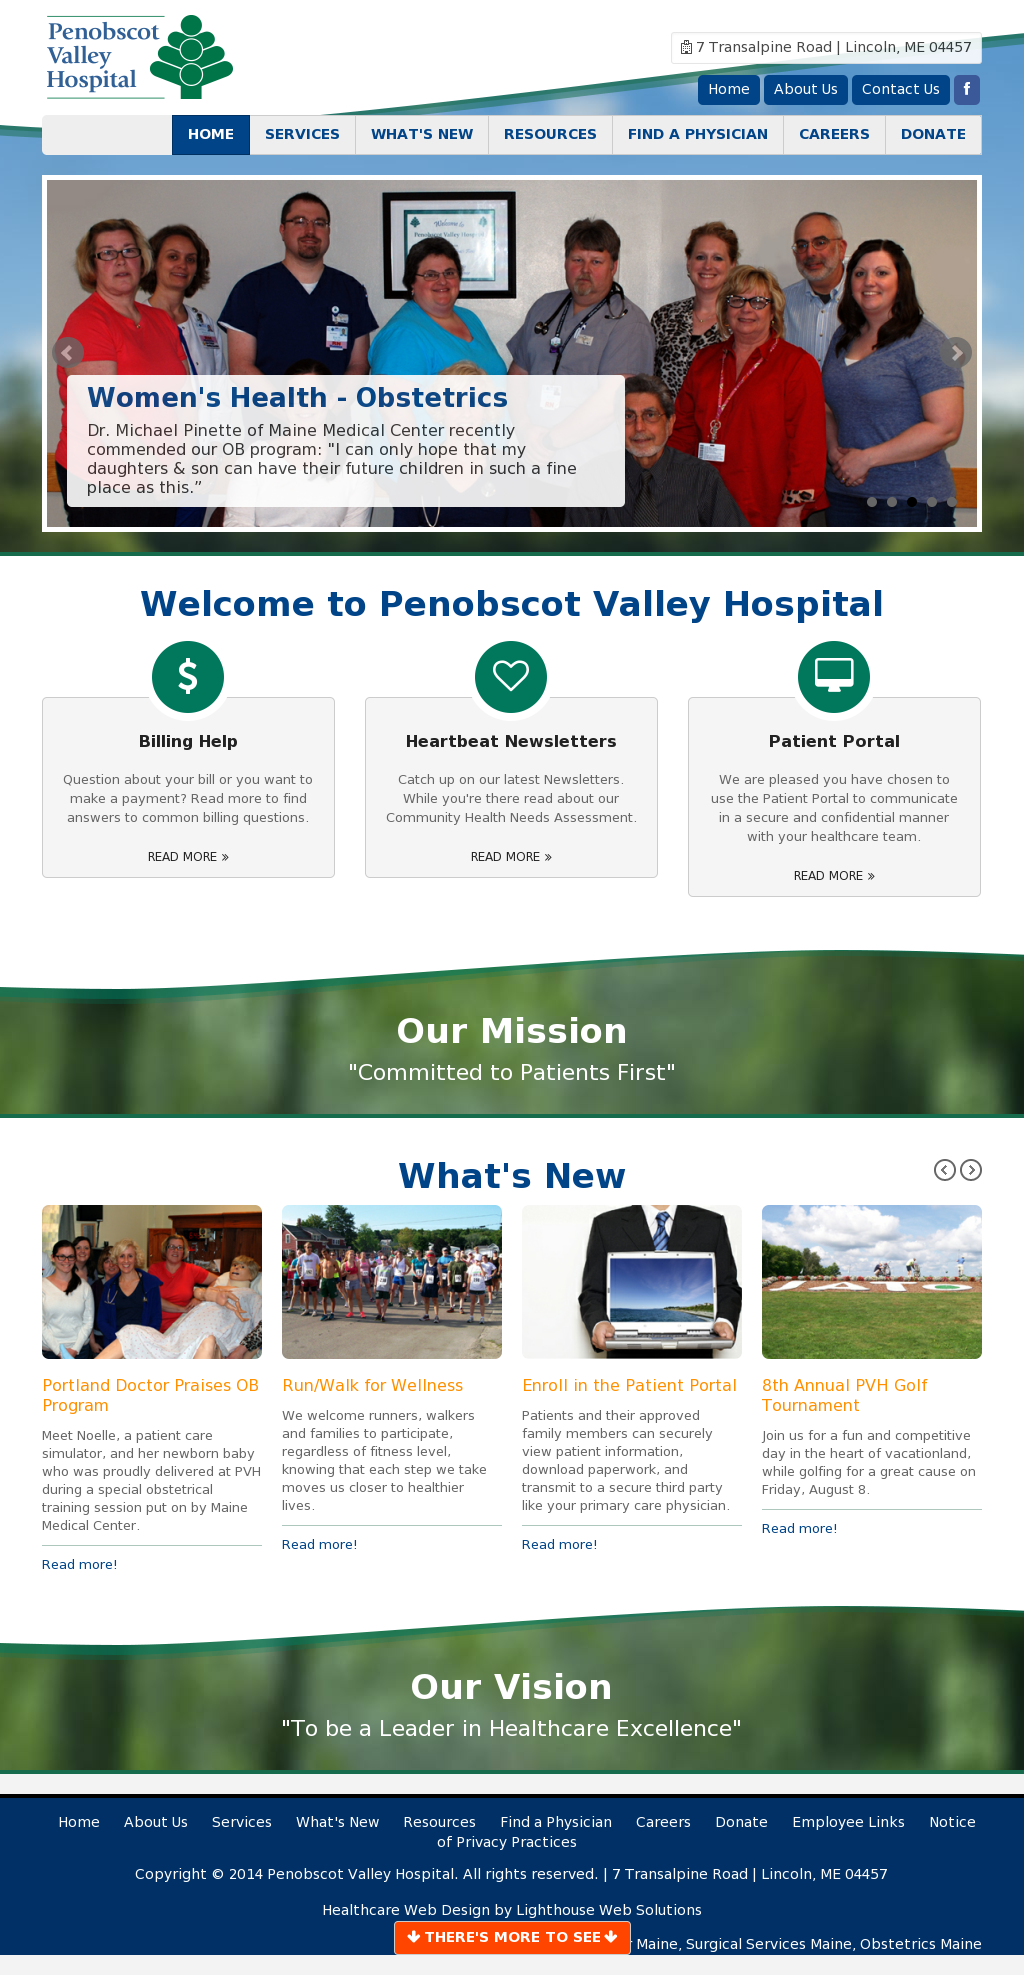 Penobscot Valley Hospital Competitors, Revenue and Employees - Owler